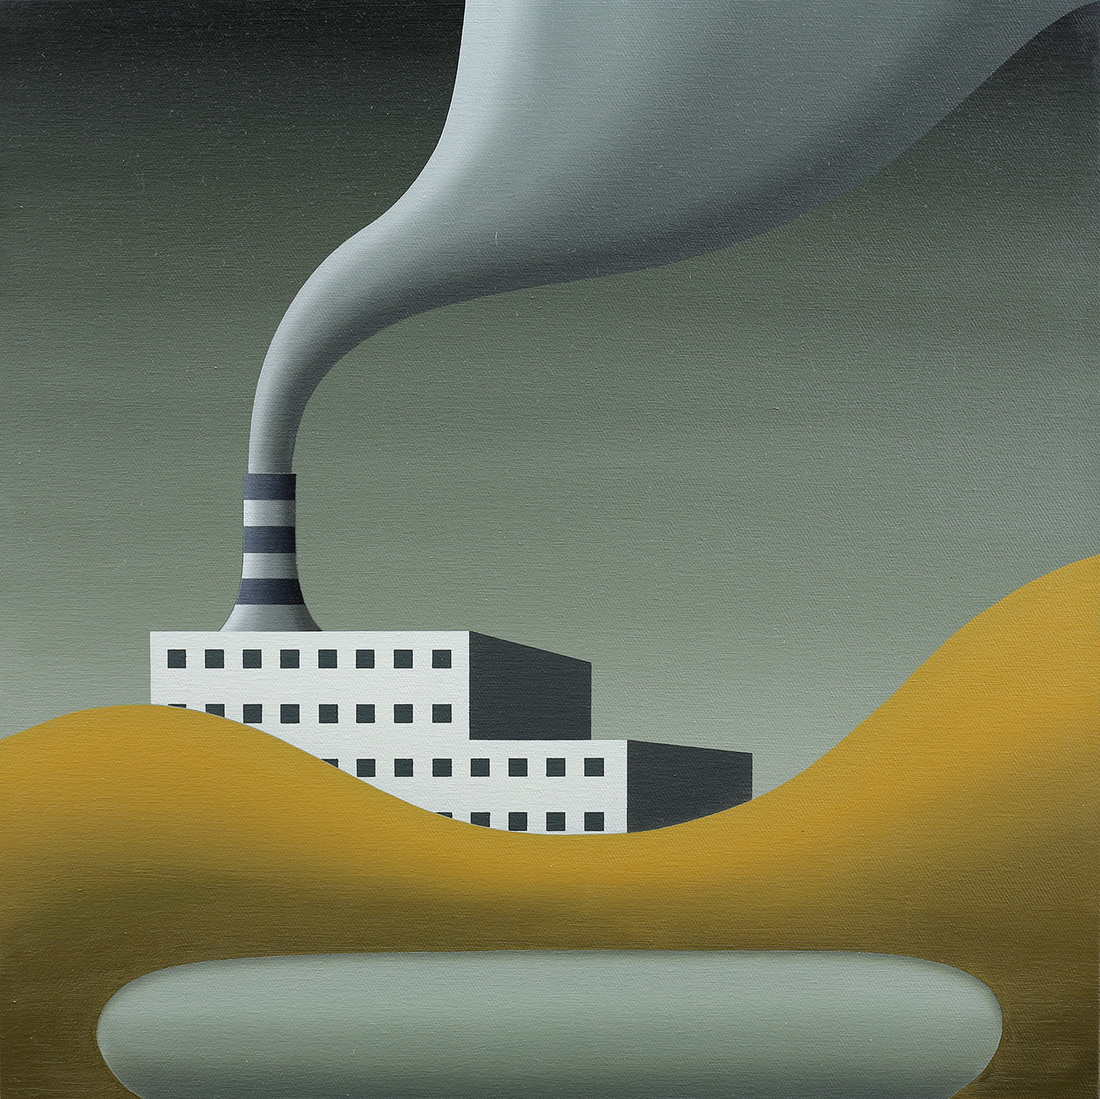 David James RELLIM (b.1986) - FACTORY SMOKE